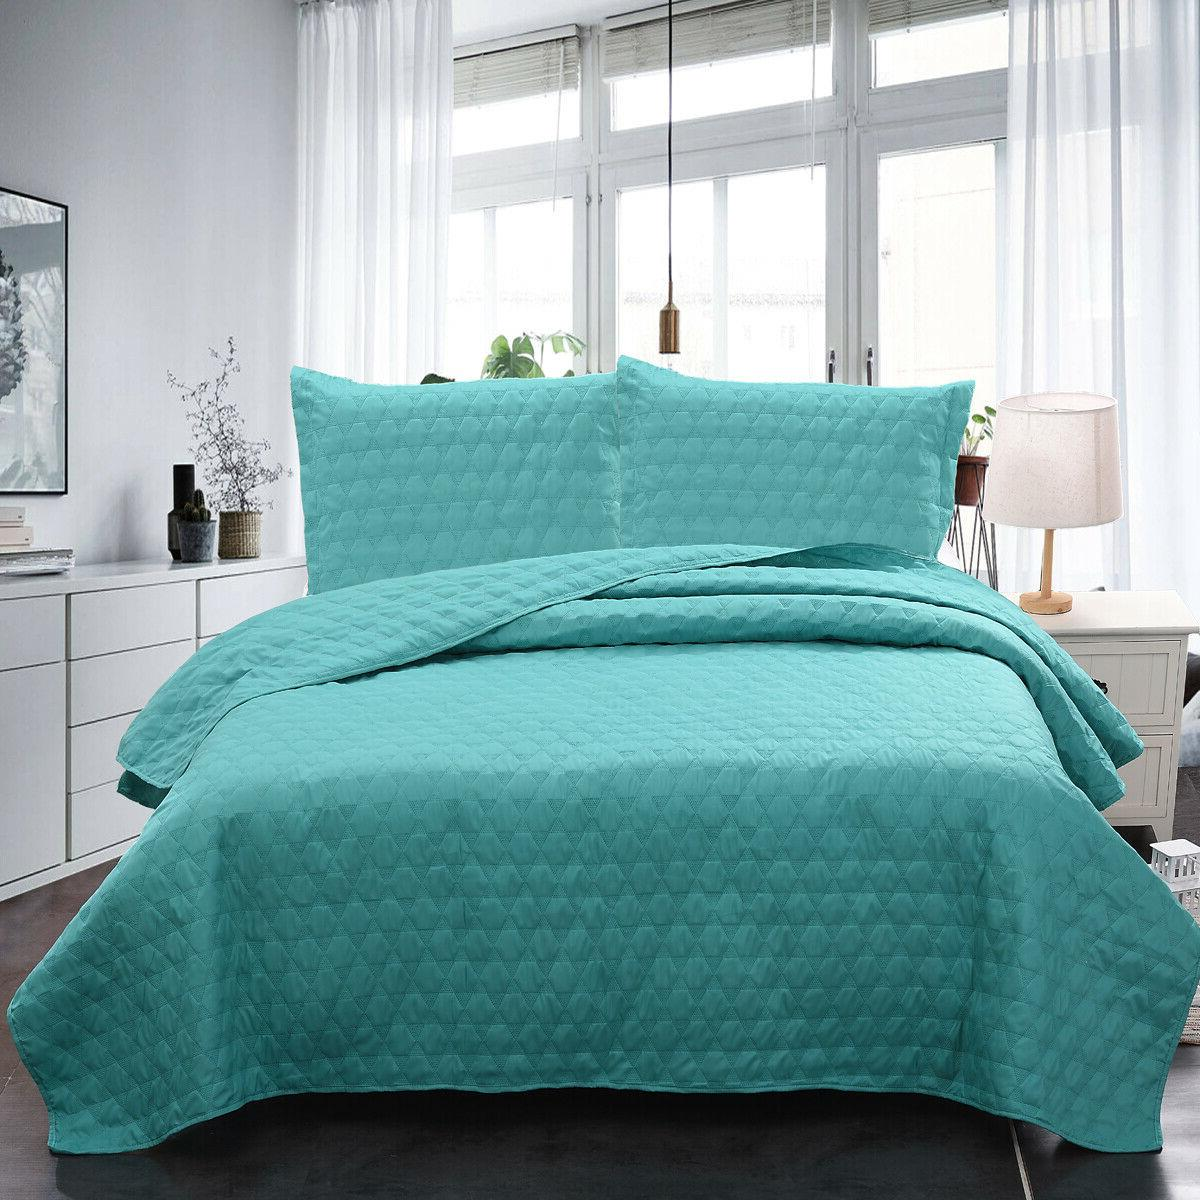 Bedspread Comforter Bedding Cover 3-Piece Quilt Set Modern